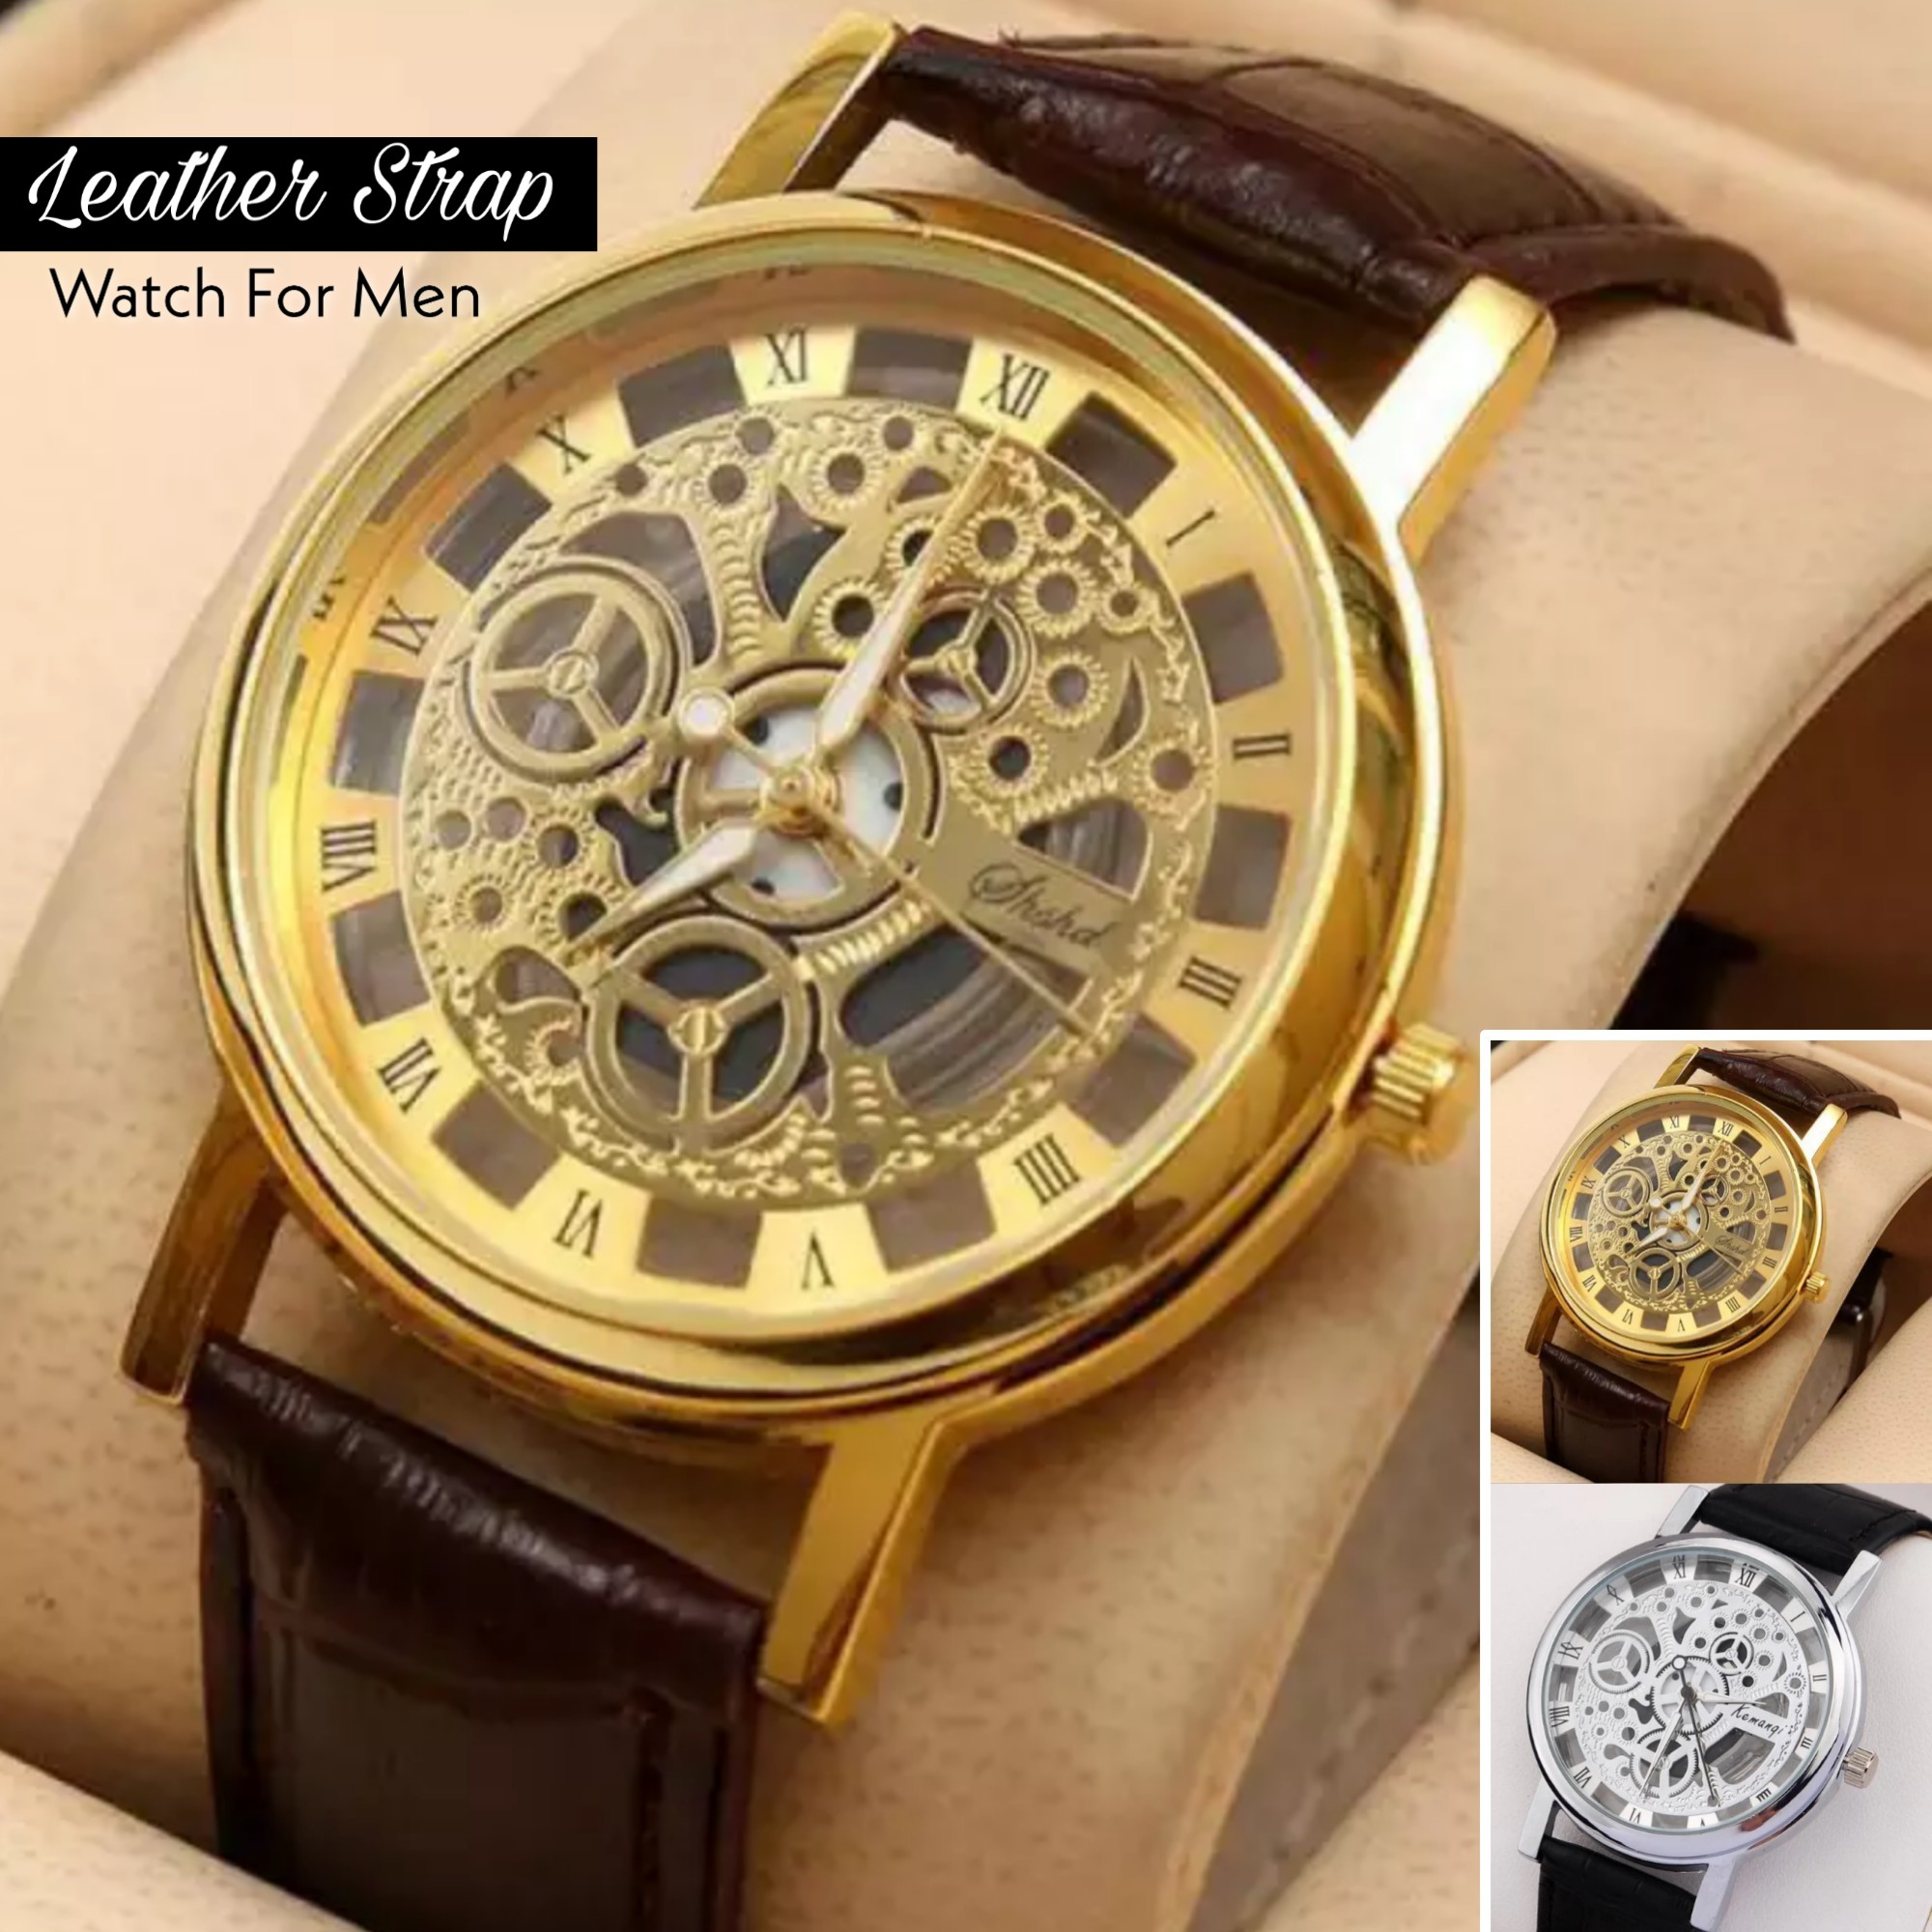 Leather Strap Skeleton Watch for Men - Stylish and Latest Design